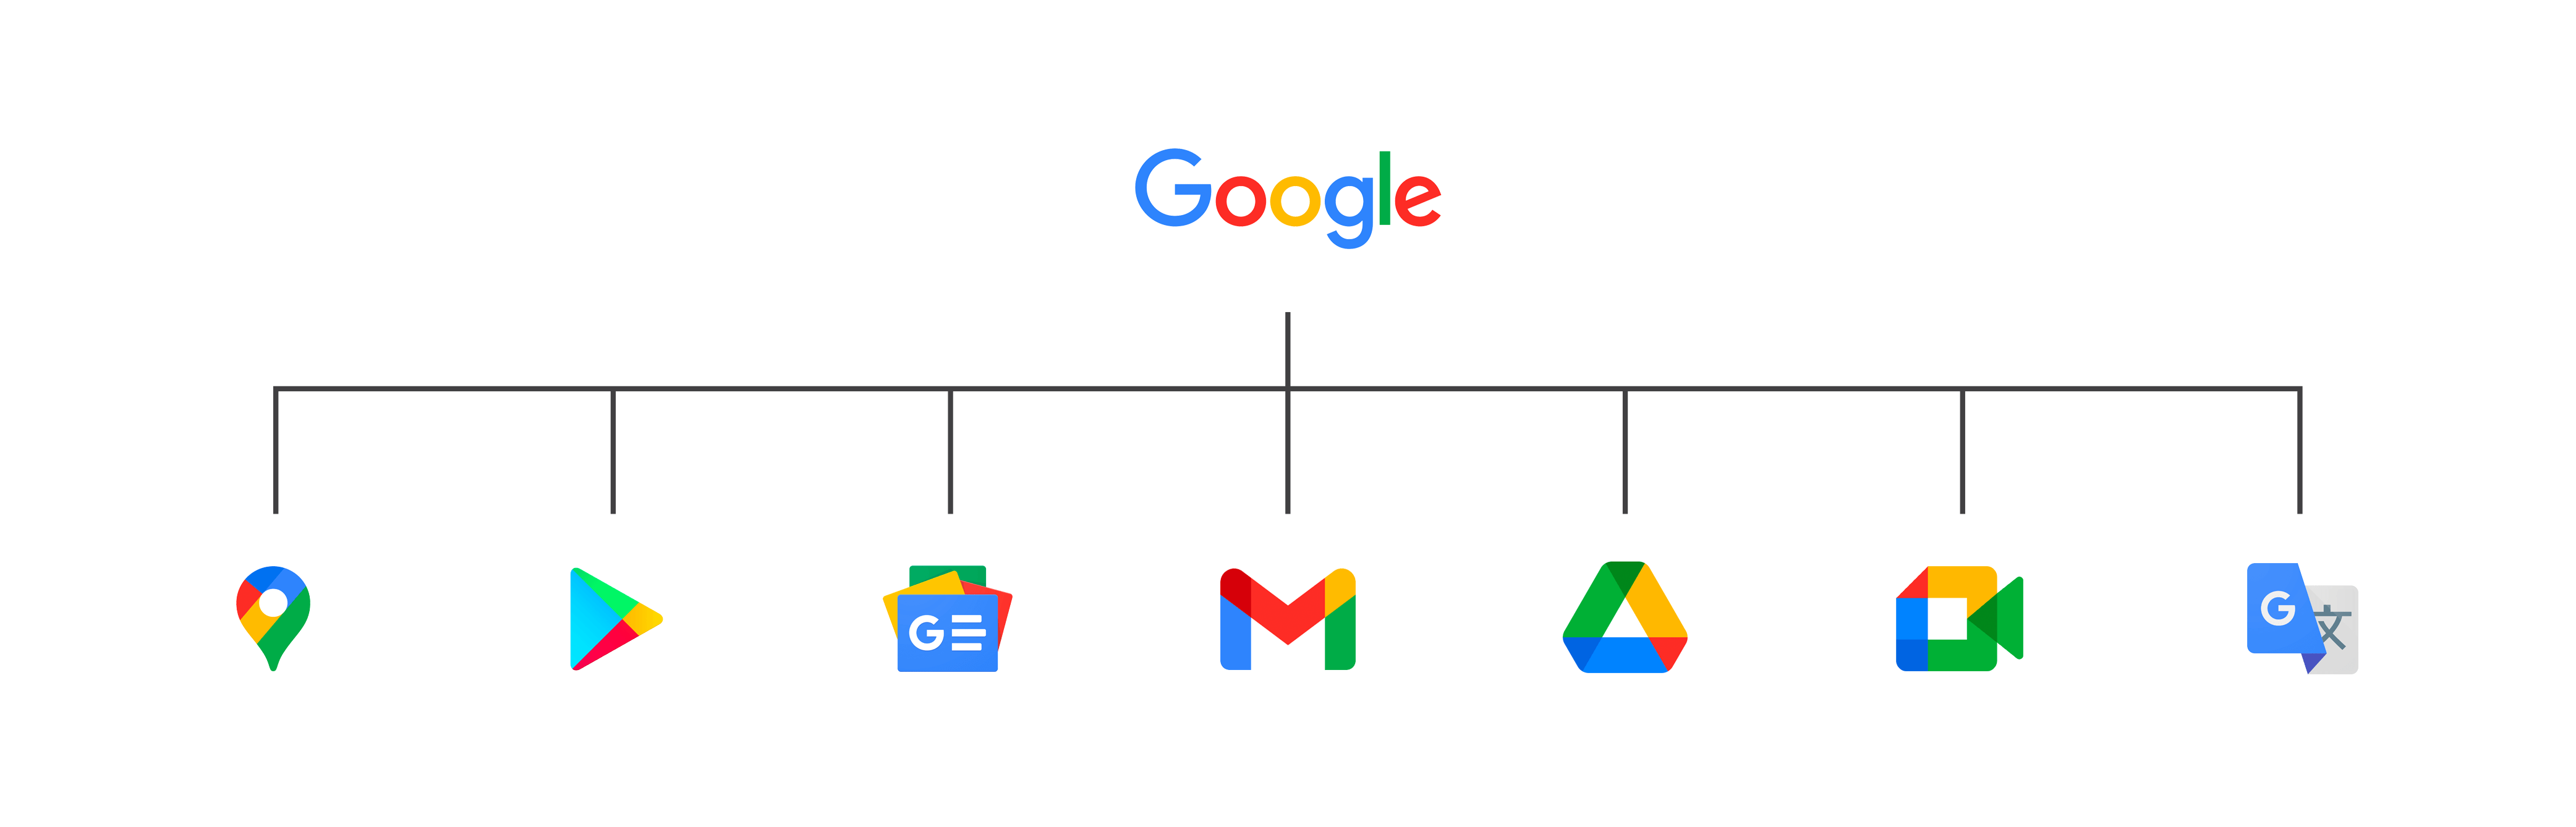 A picture showing different corporate brands Google owns